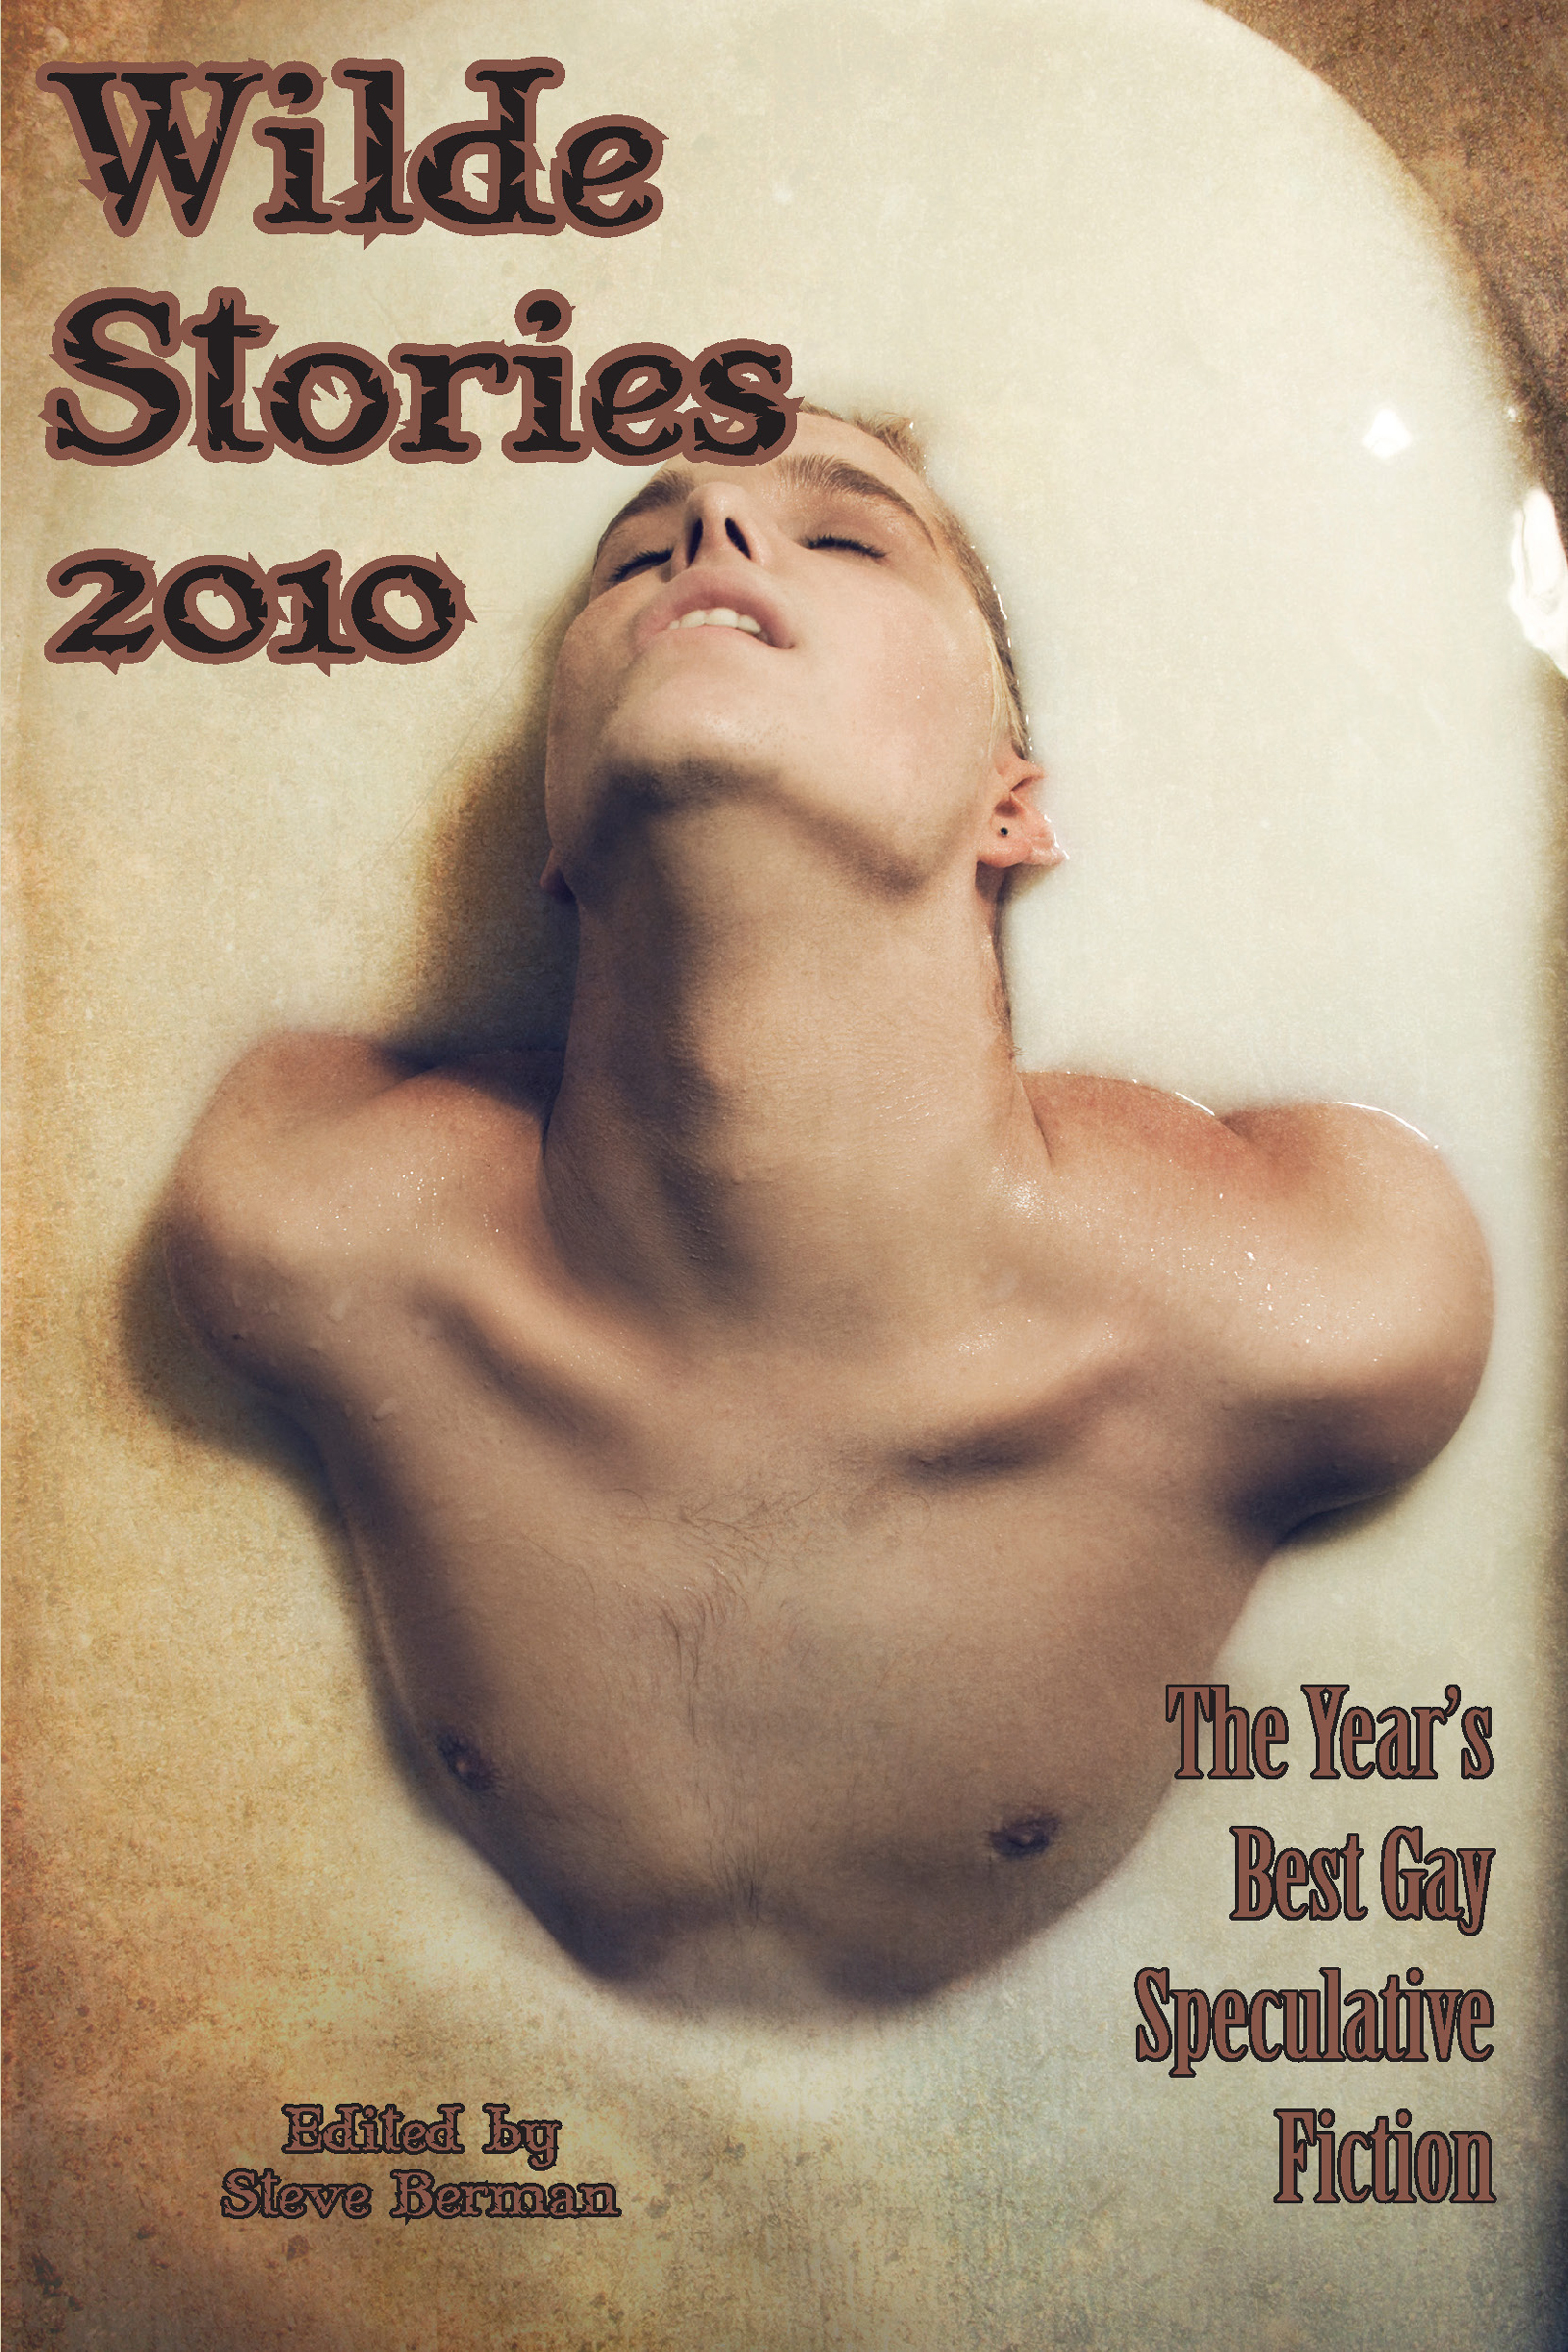 Best Gay Fiction 45